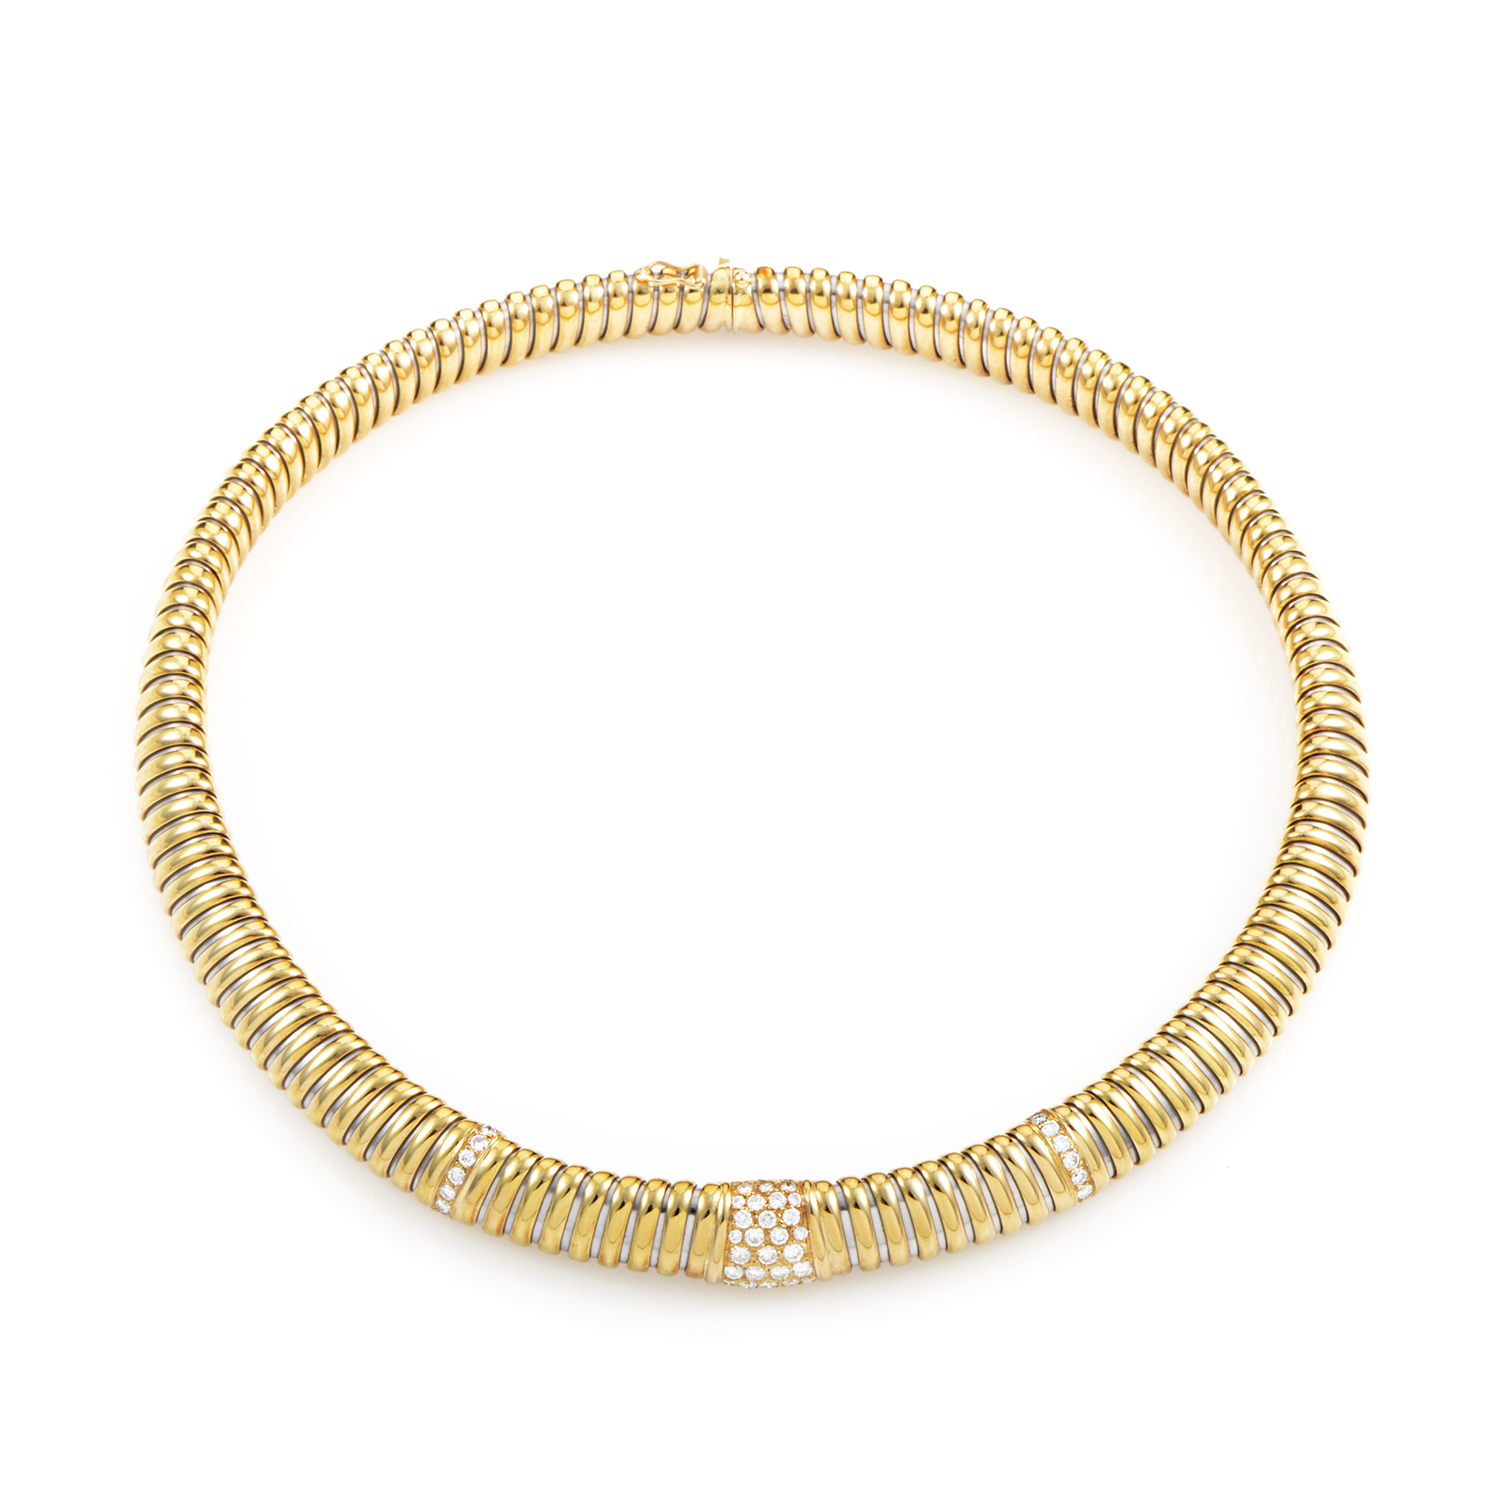 Cartier Women's 18K Yellow Gold & Stainless Steel Diamond Collar Necklace